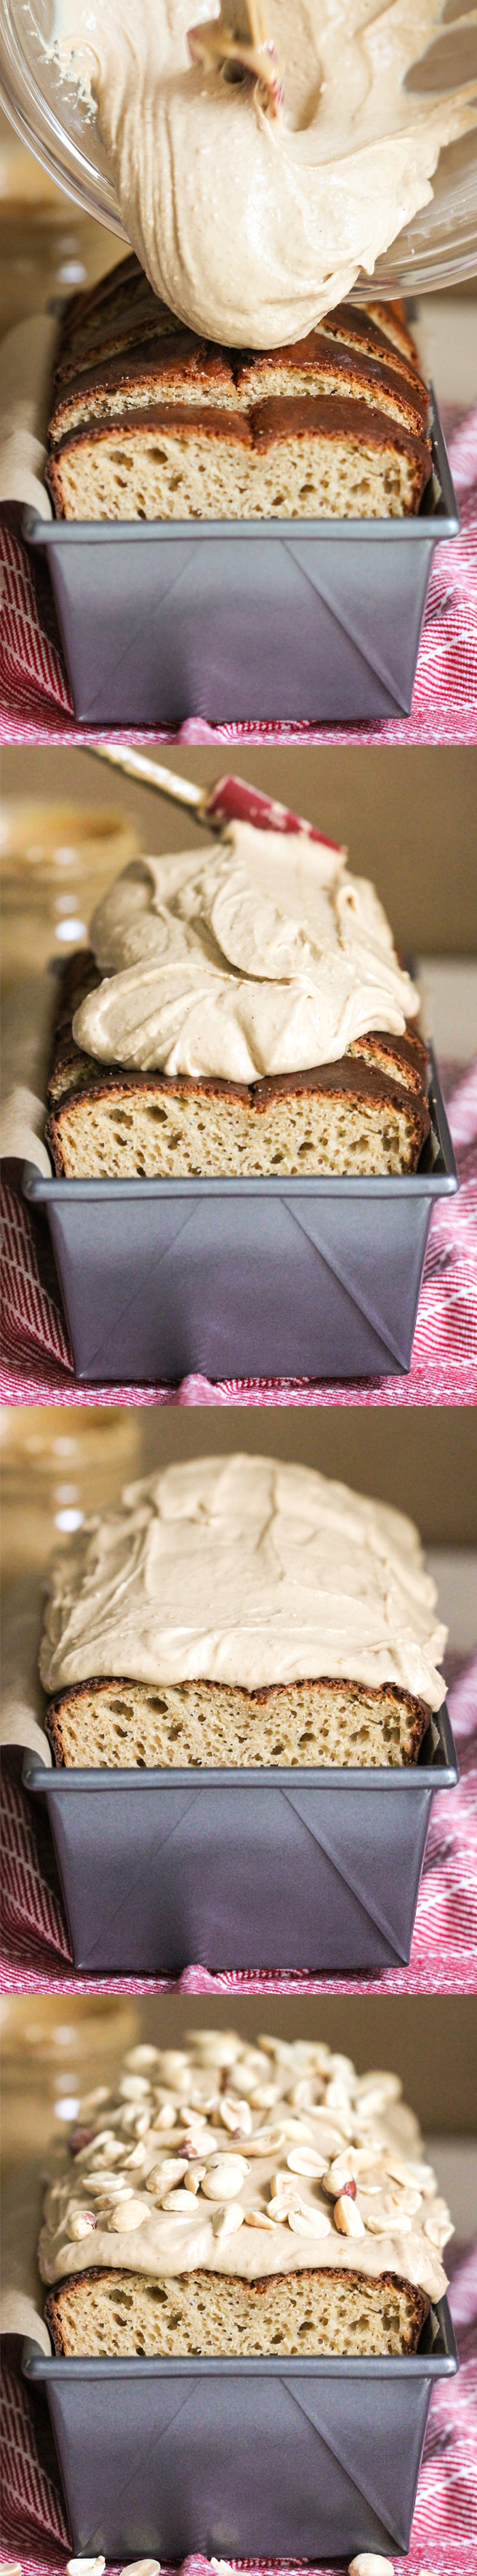 20 Healthy Desserts You Can Eat For Breakfast: 17) Healthy Peanut Butter Pound Cake with Peanut Butter Frosting (refined sugar free, high protein, high fiber) - Healthy Dessert Recipes at Desserts with Benefits